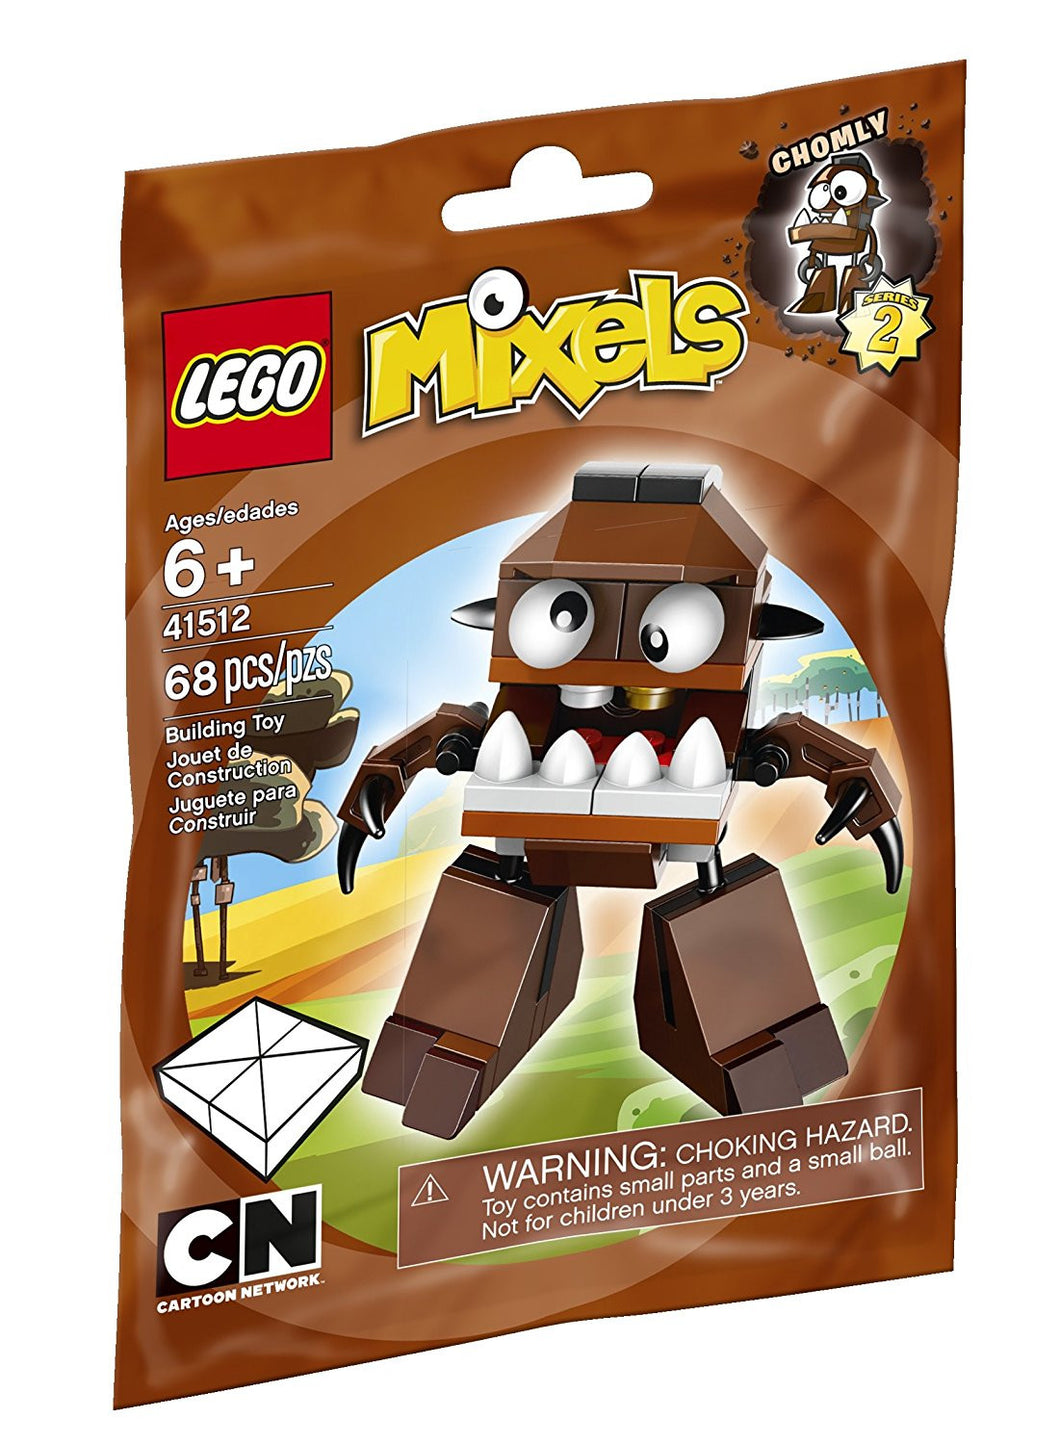 LEGO Mixels CHOMLY 41512 Building Kit